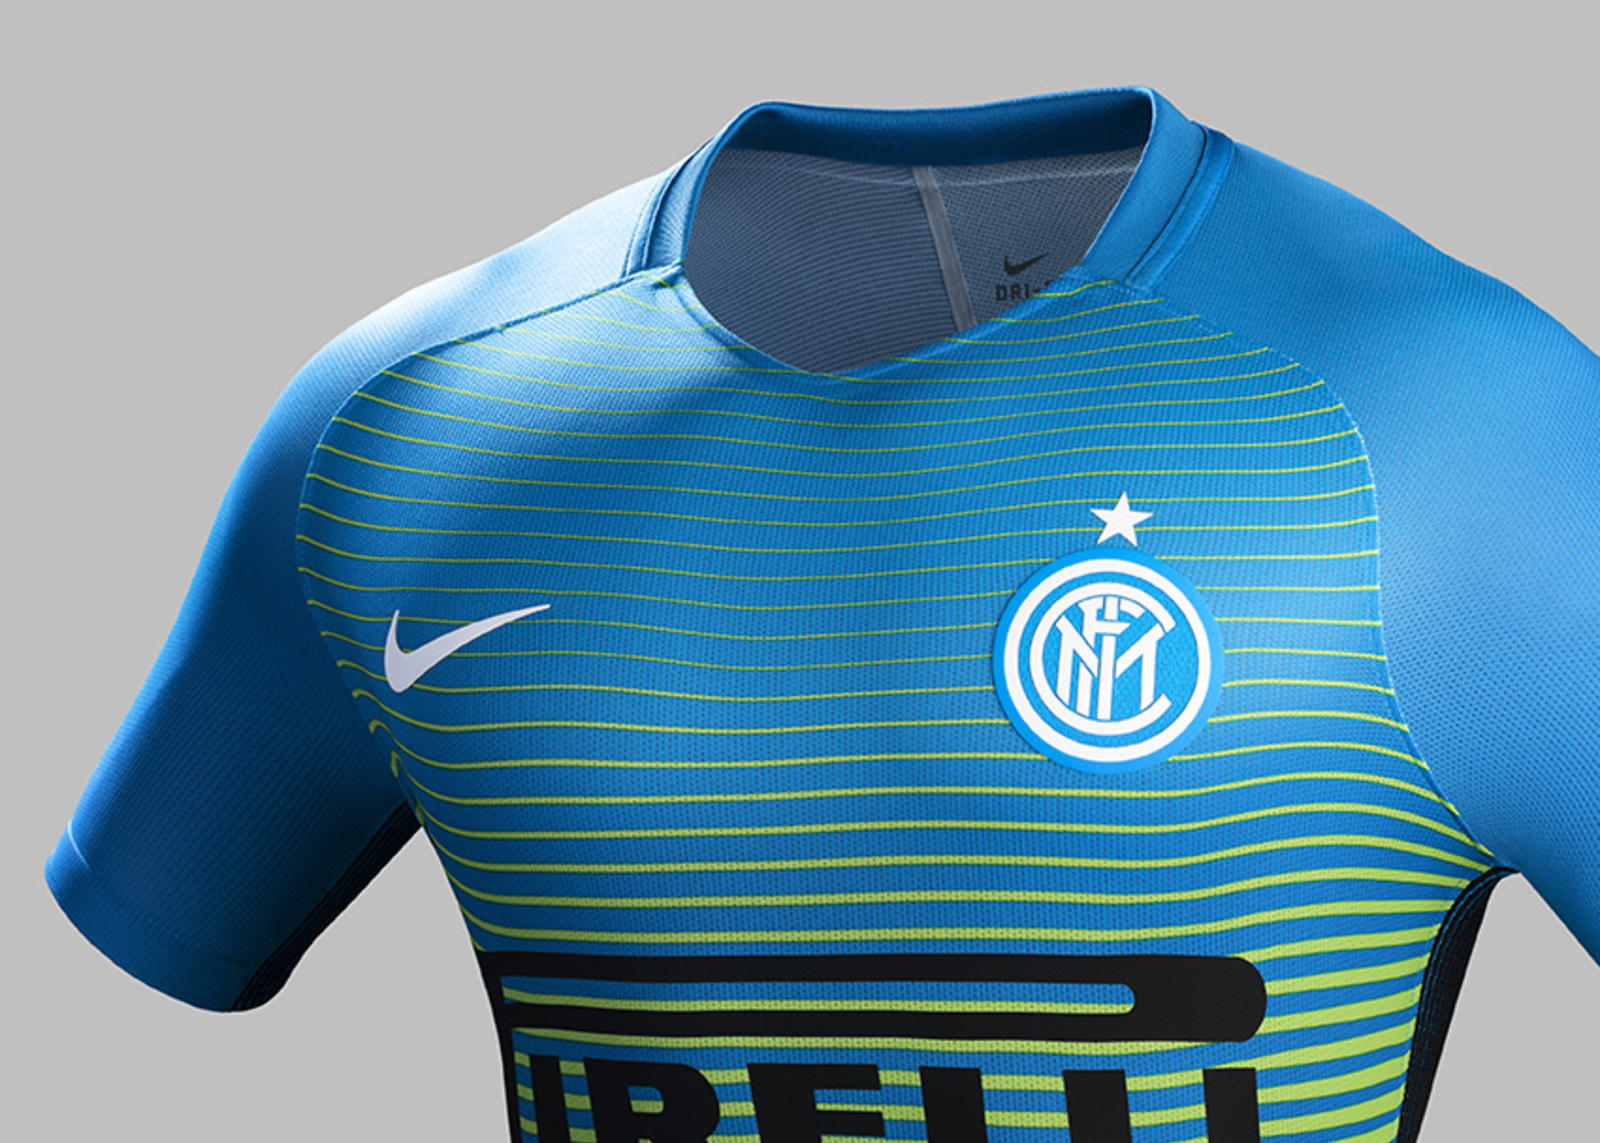 Fa16_CK_Comms_3RD_Crest_Match_Inter Milan